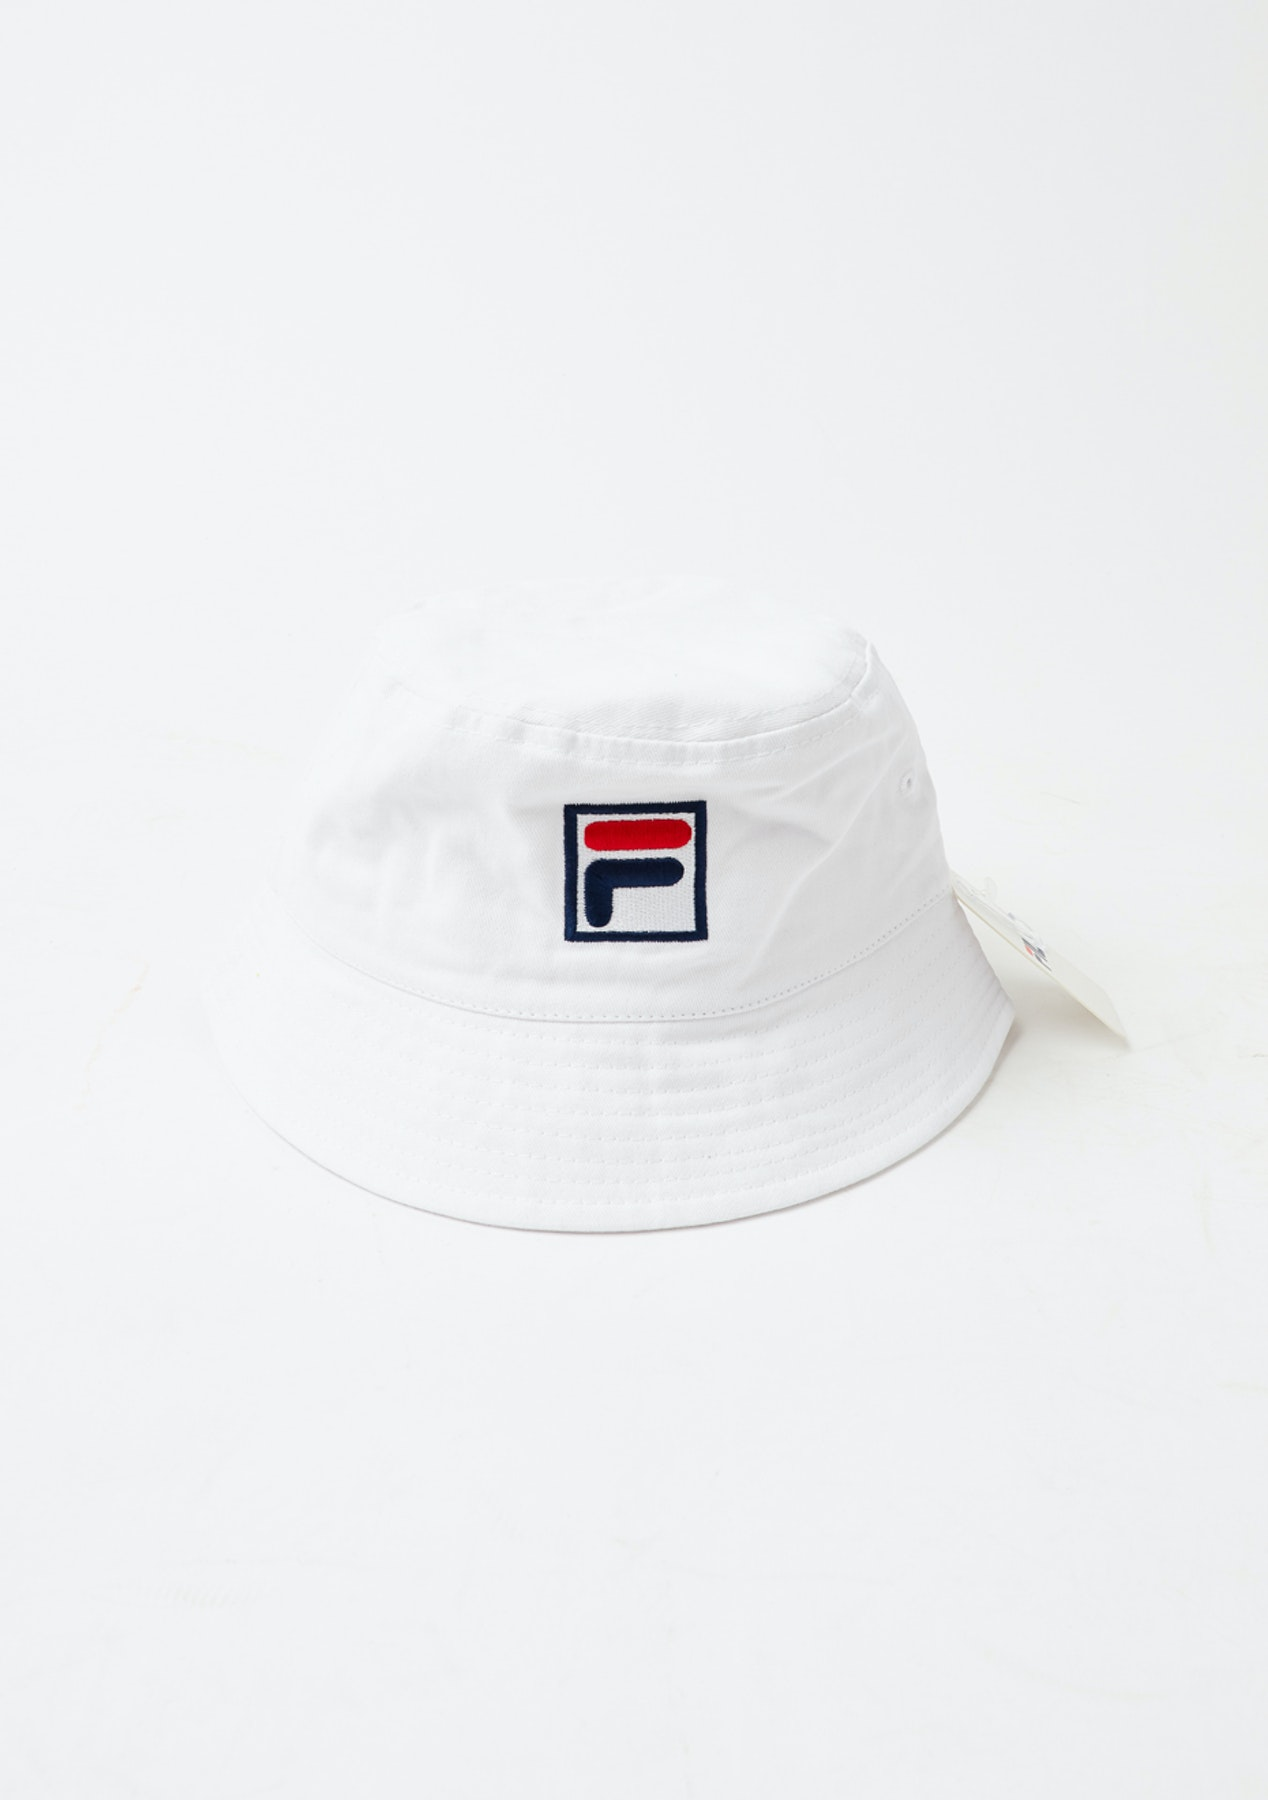 Fila Bucket Hat - White - Under  20 Mens Outlet - Onceit e33a3ac8eab